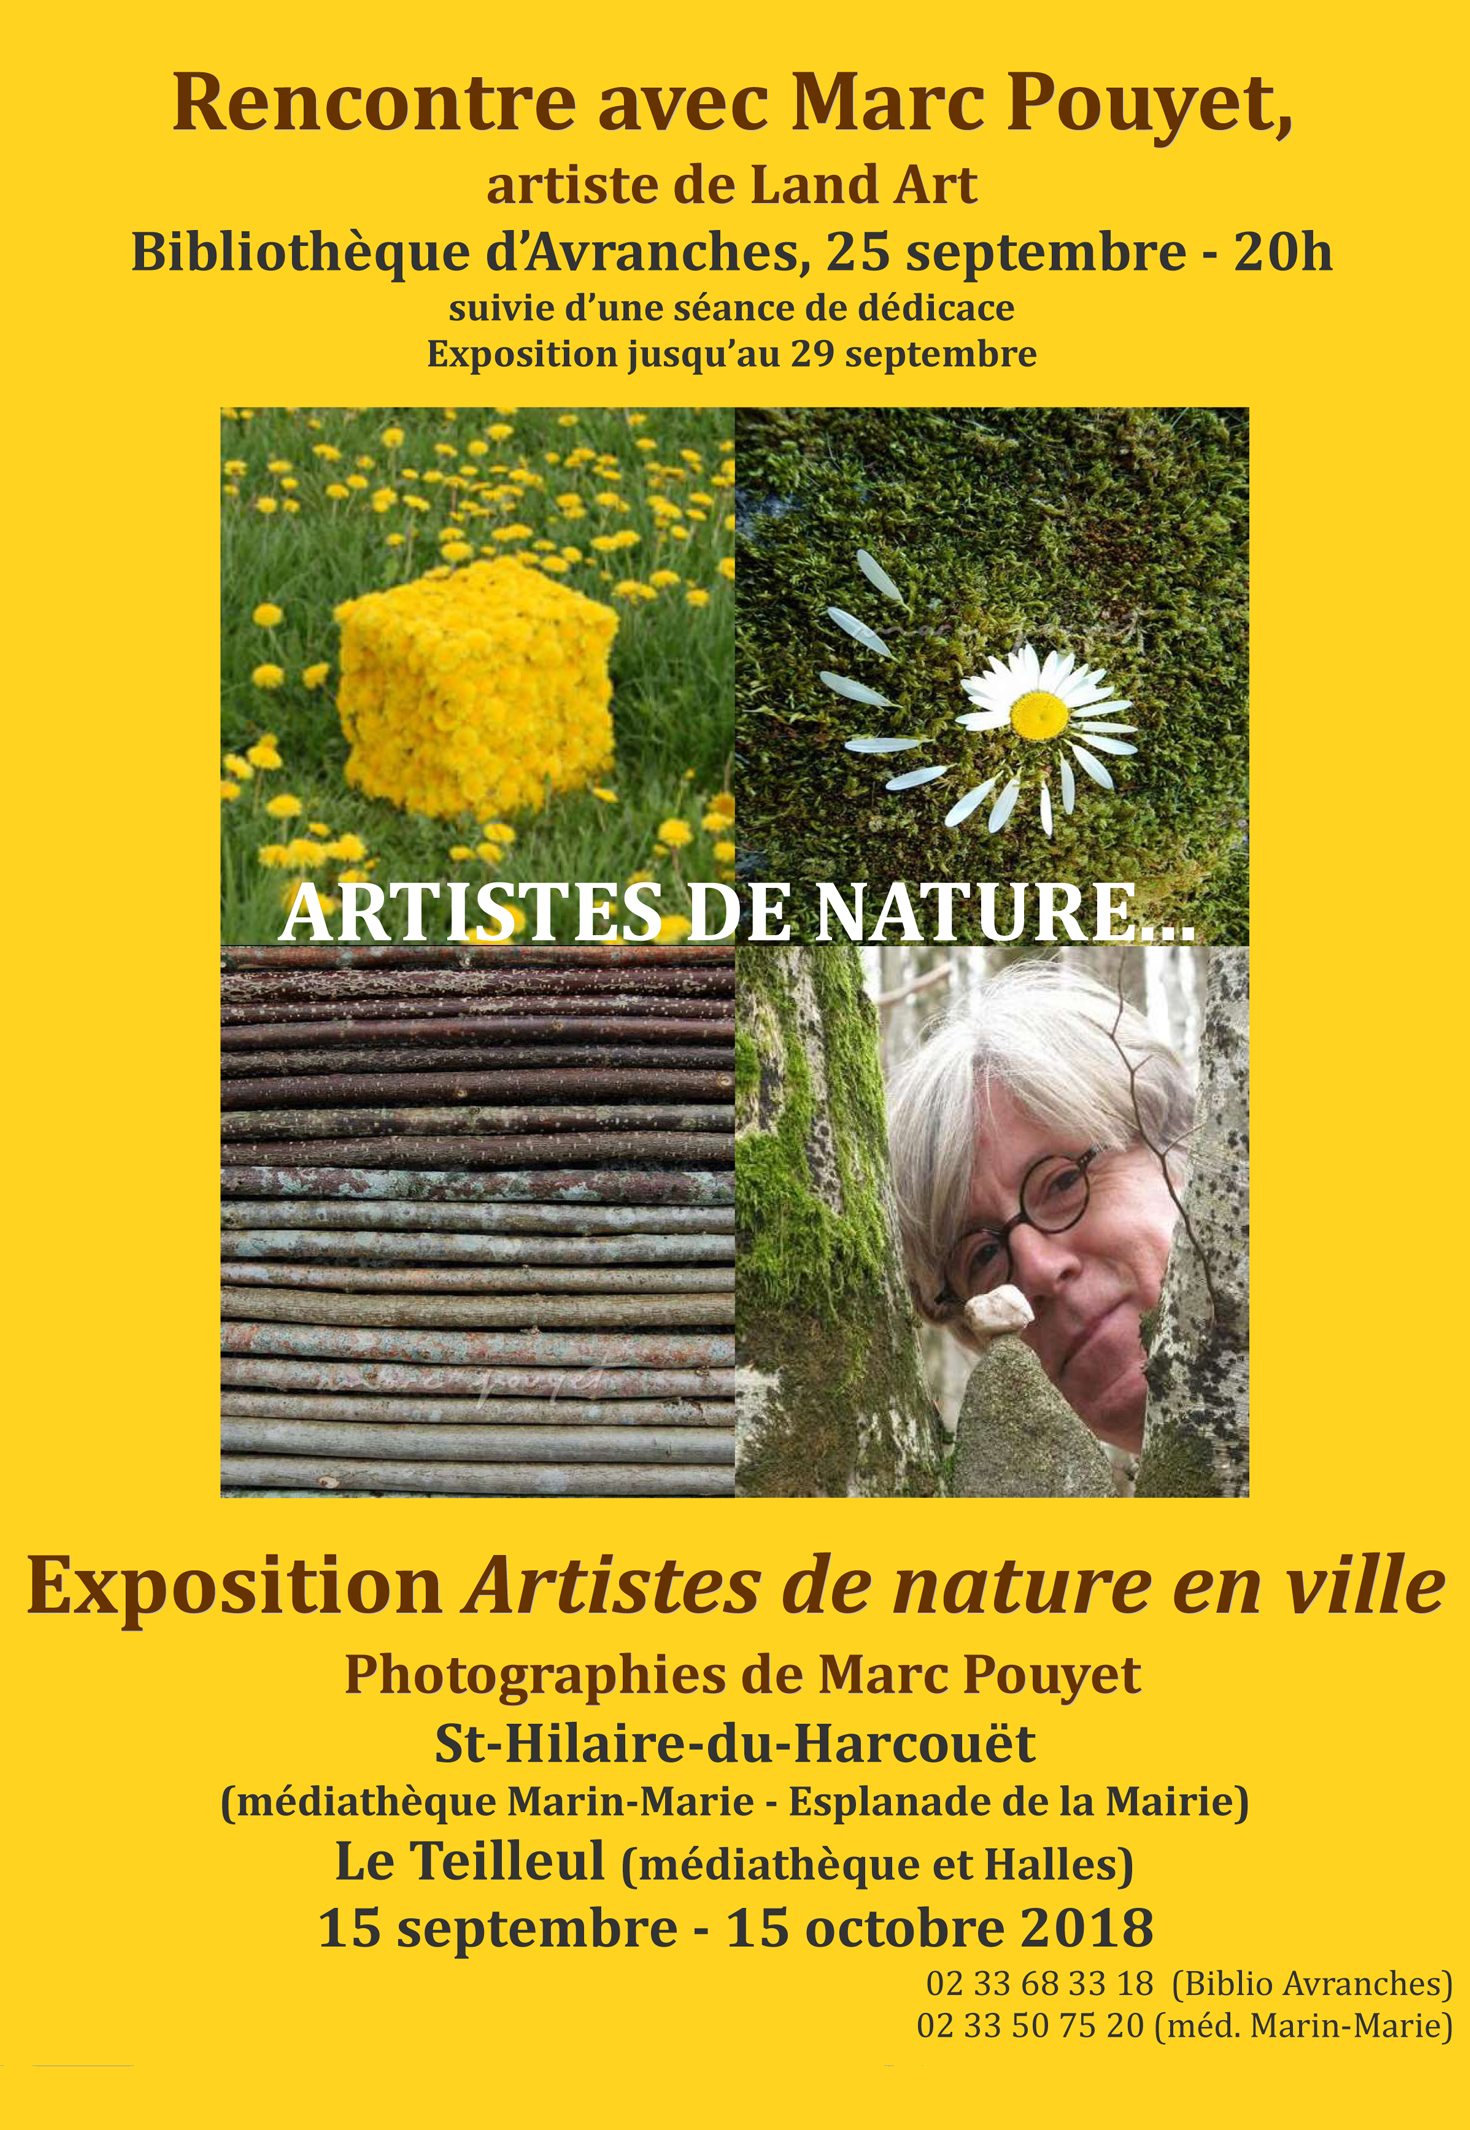 Article Exposition LE TEILLEUL